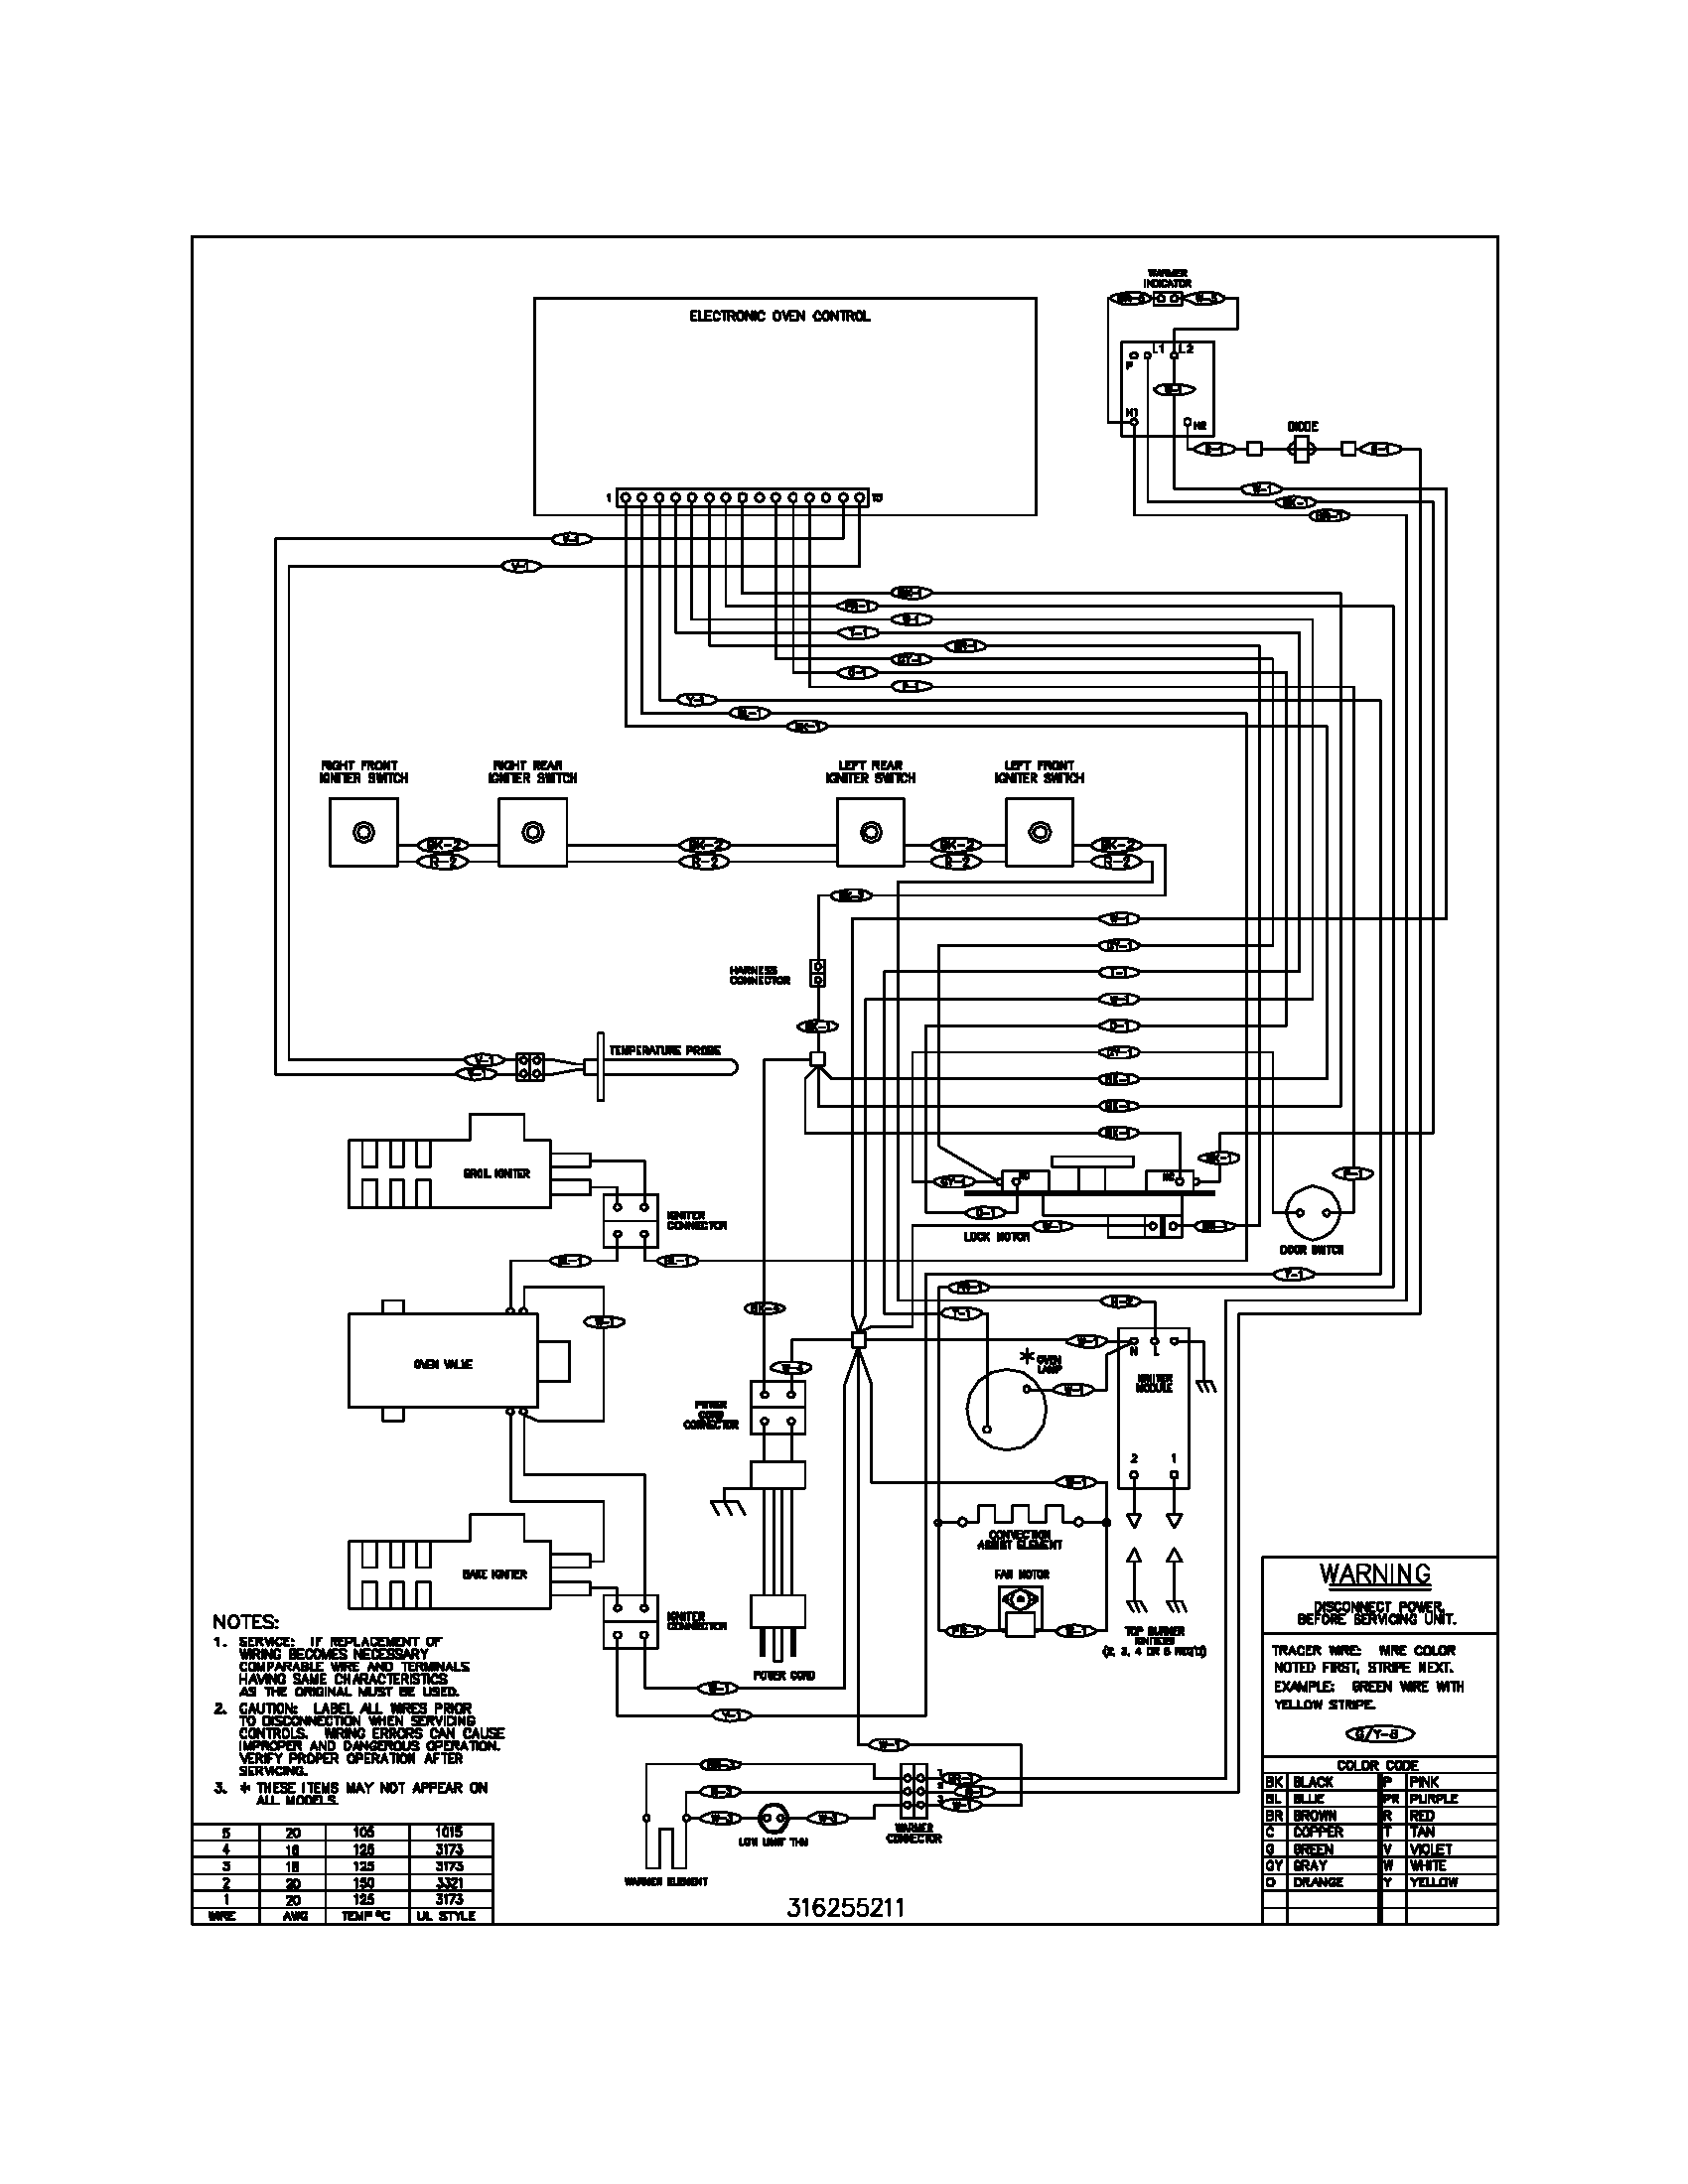 wiring diagram parts electrolux wiring diagram electrolux dishwasher service manual Basic Electrical Wiring Diagrams at suagrazia.org